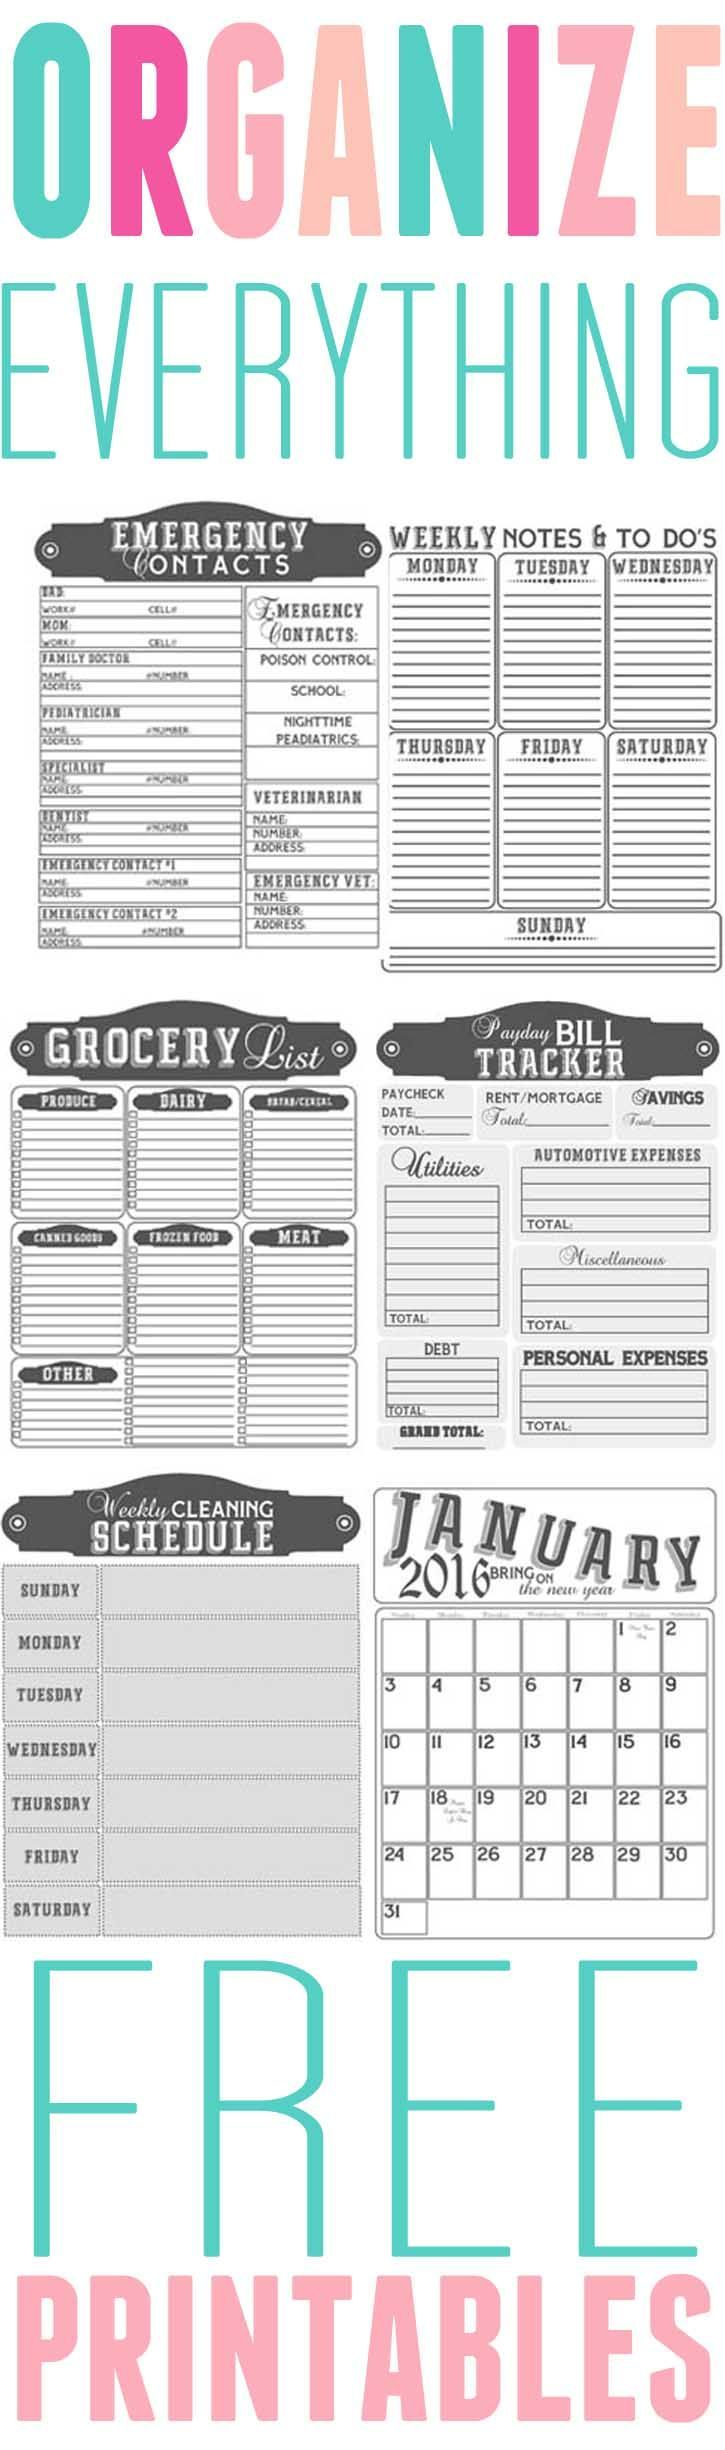 Get Organized- Free printables to organize your home in 2016